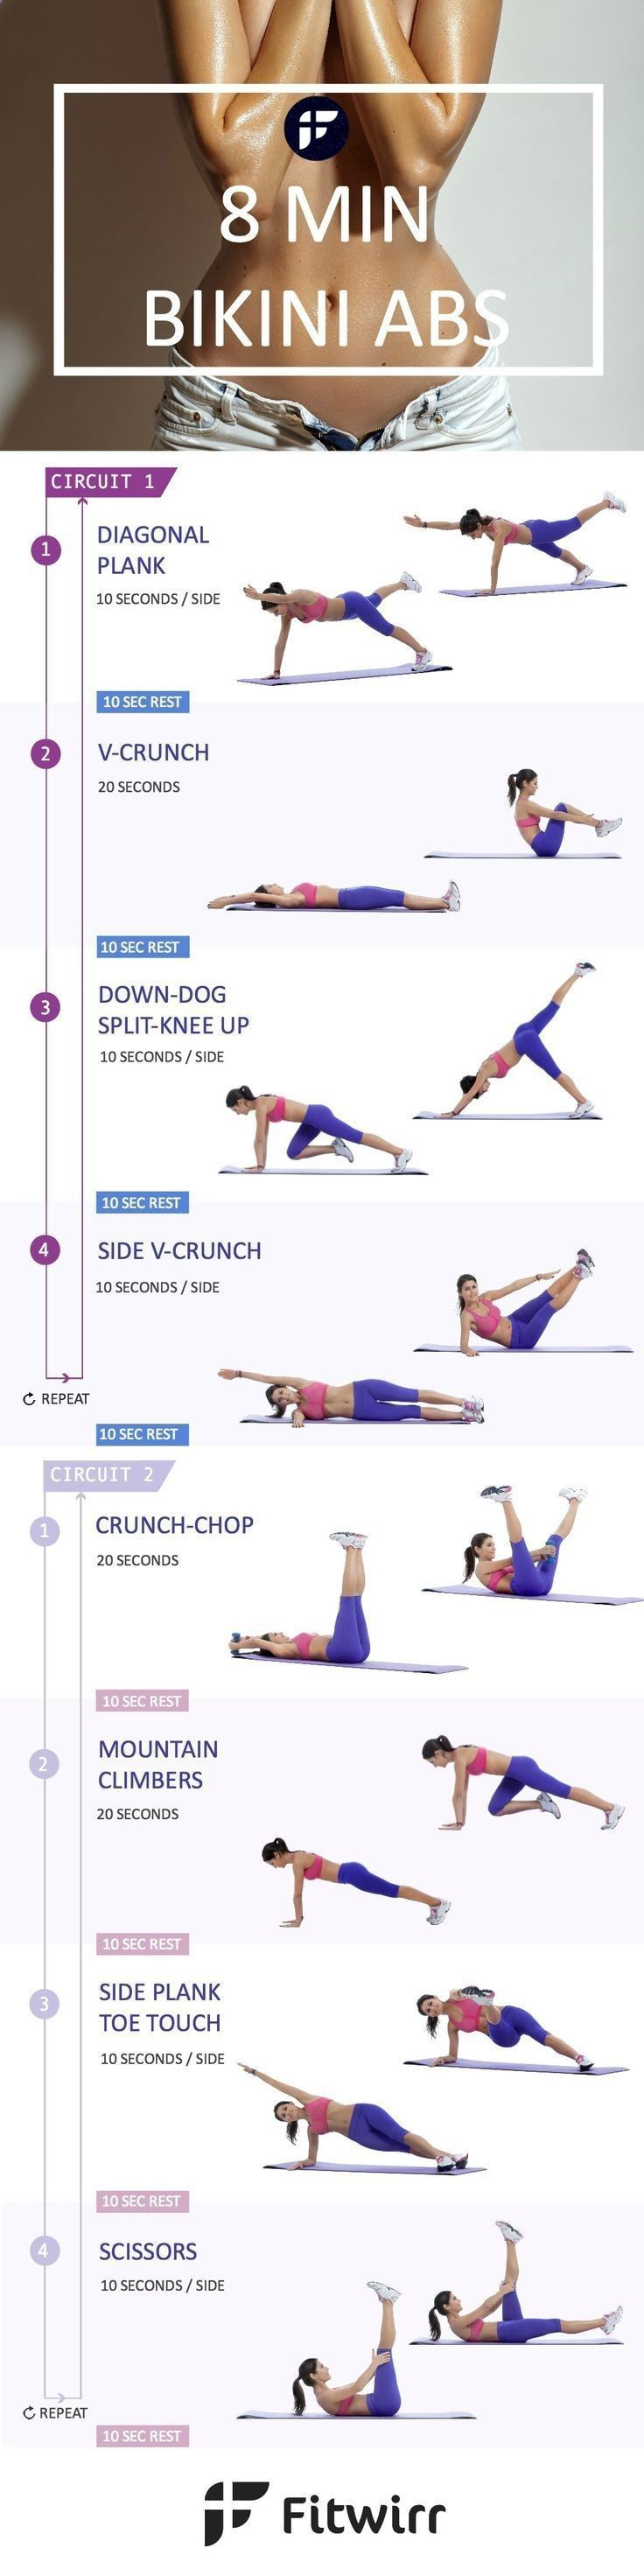 How to Lose Belly Fat Quick with 8 Minute Bikini Ab Workout #howtolosebellyfat